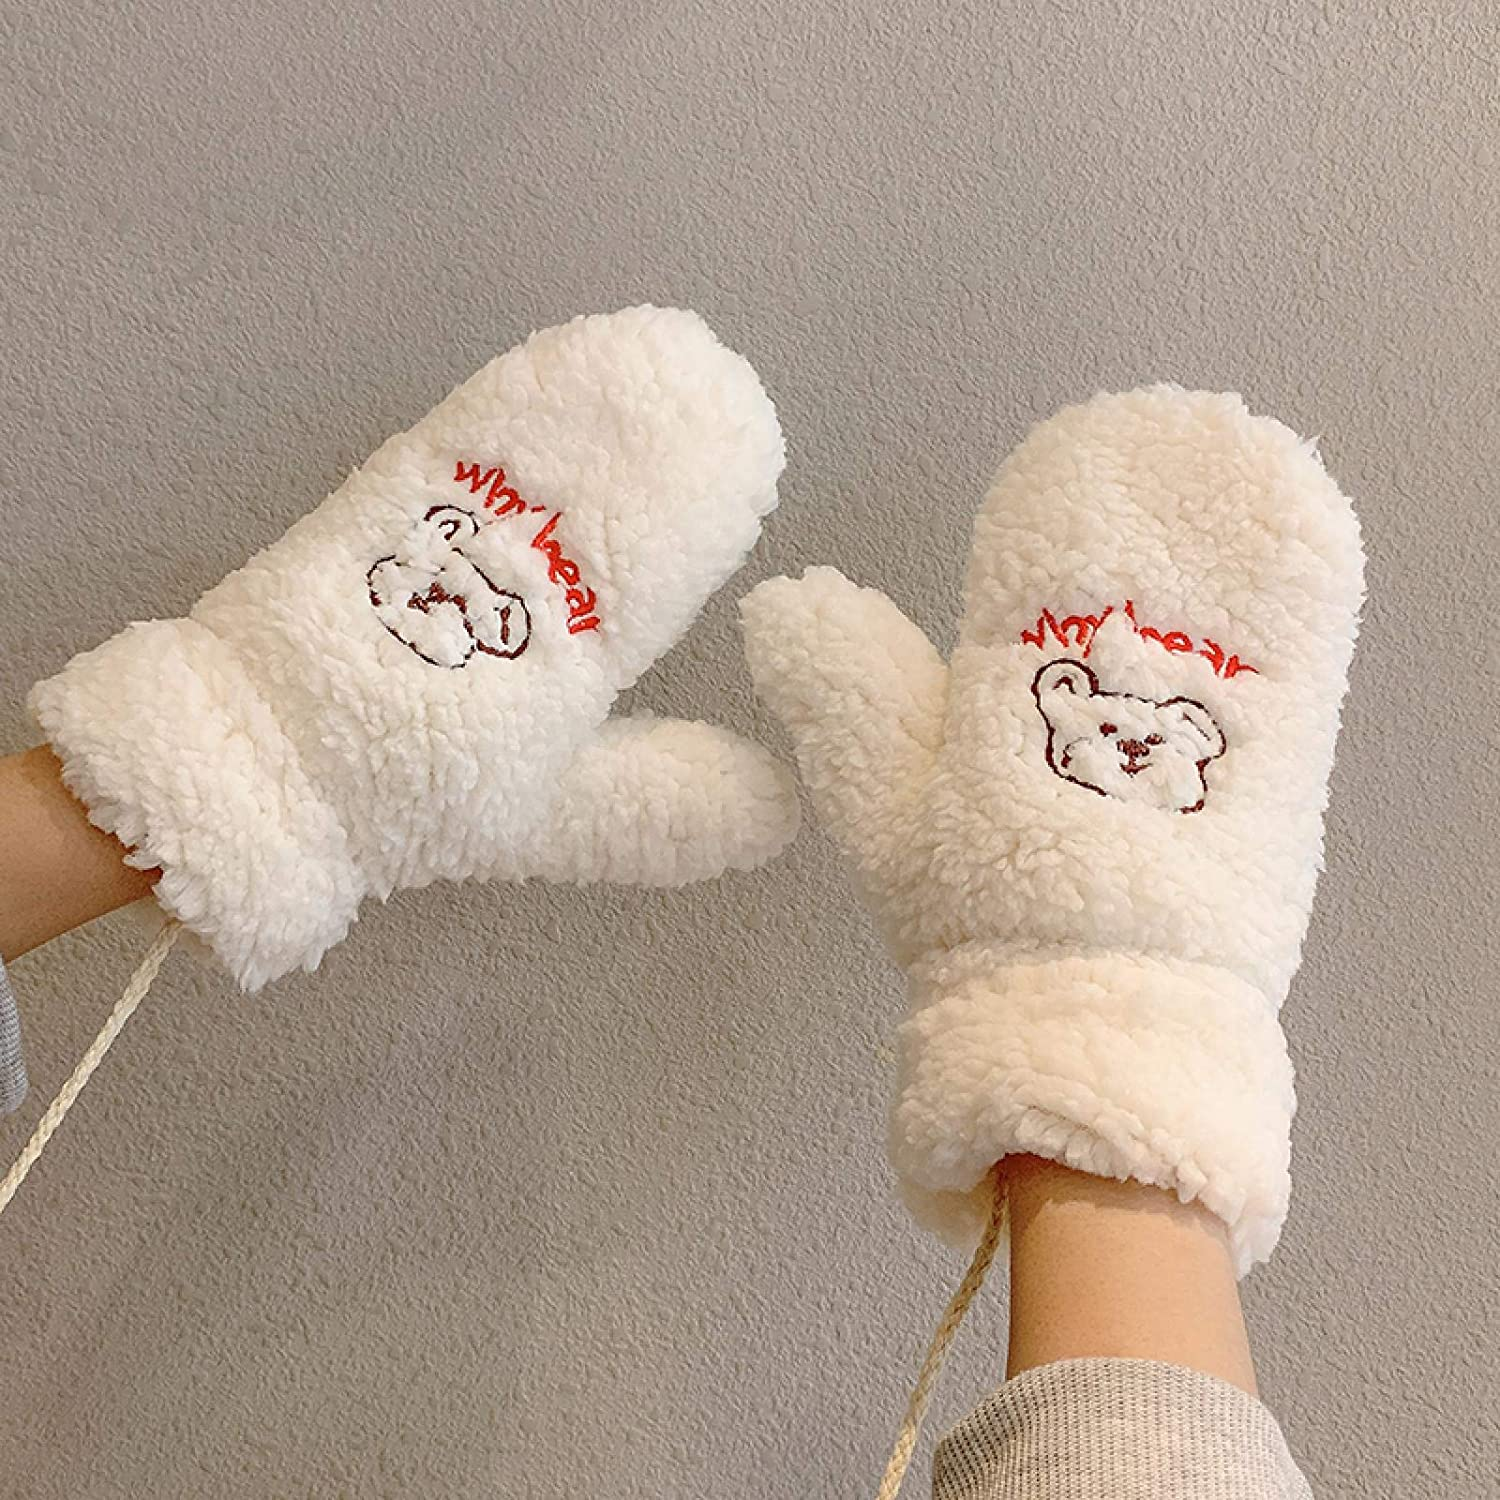 AMILIEe Plus Velvet Gloves Cute Cartoon Bear Lamb Velvet Hanging Neck Riding Gloves Female Winter Thickening Warmth Riding Cold-Proof Mitten 均码 白色